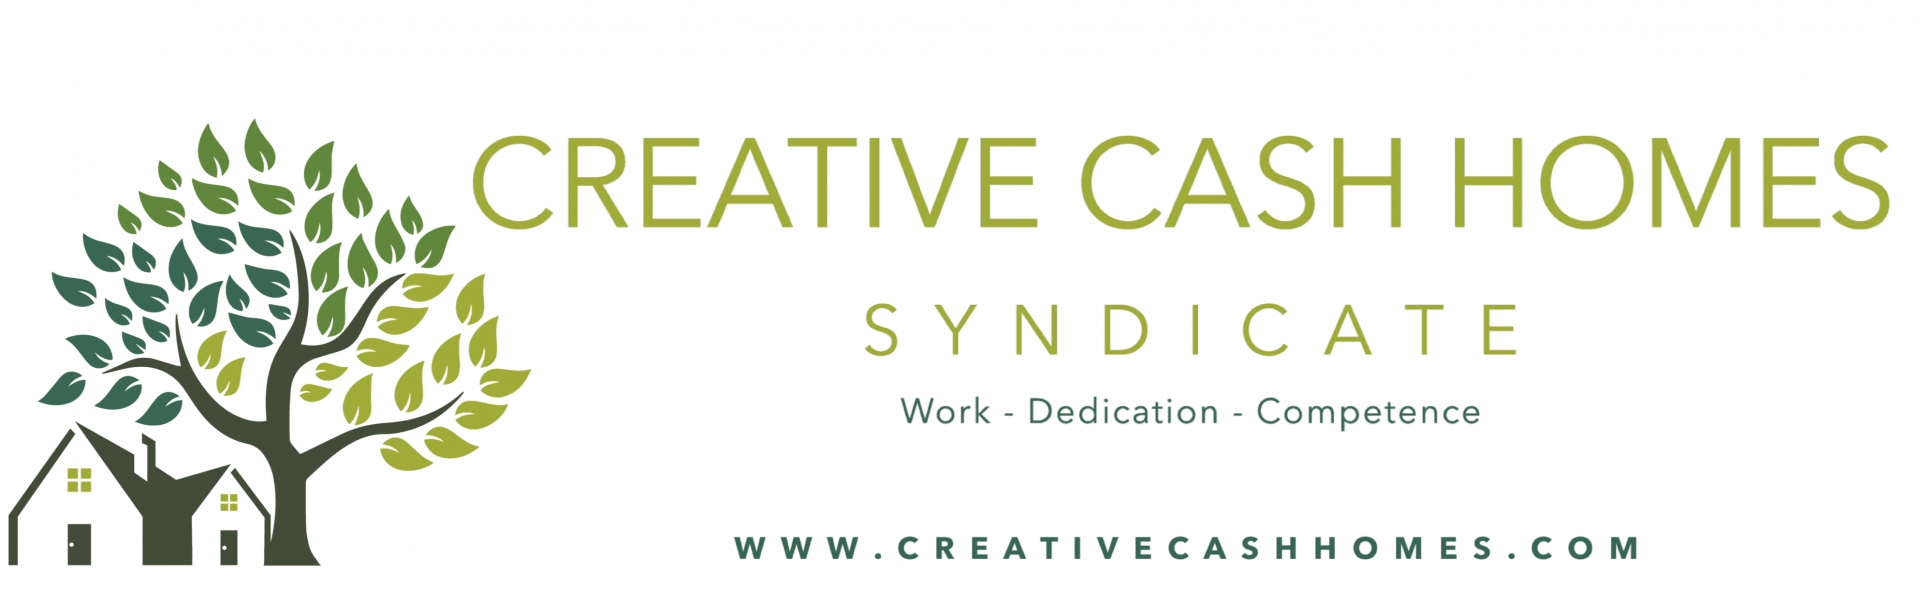 Creative Cash Homes Syndicate logo